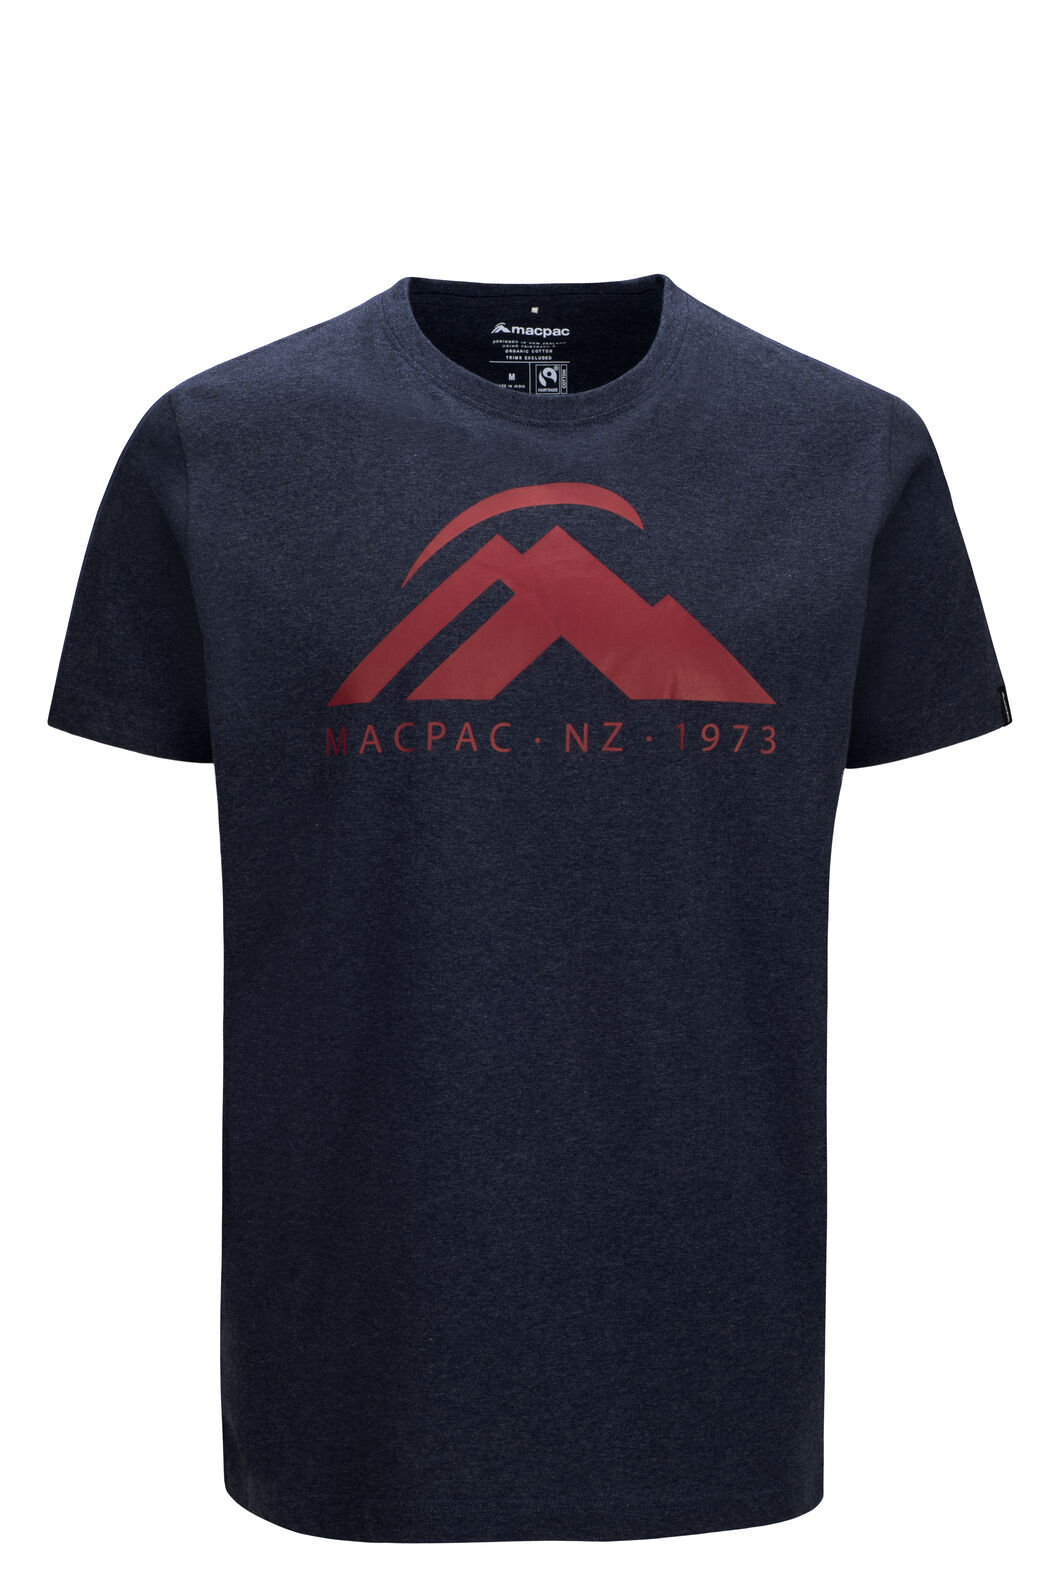 Macpac Mountain Fairtrade Organic Cotton Tee — Men's, Total Eclipse Marle, hi-res